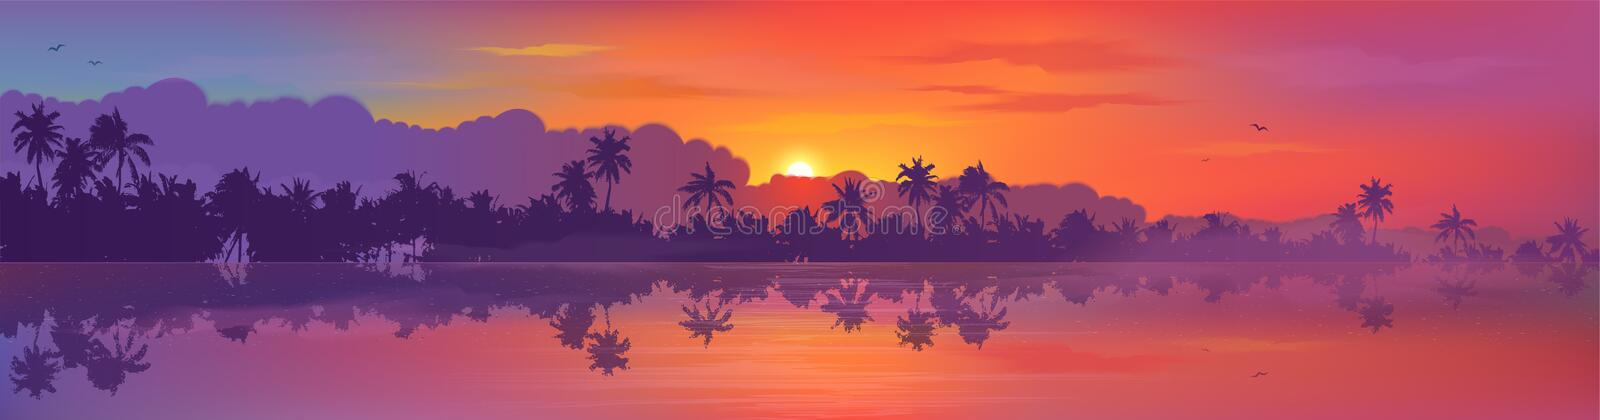 Colorful tropic sunset view to palm trees forest silhouettes with calm ocean water reflection. Vector banner. Illustration royalty free illustration